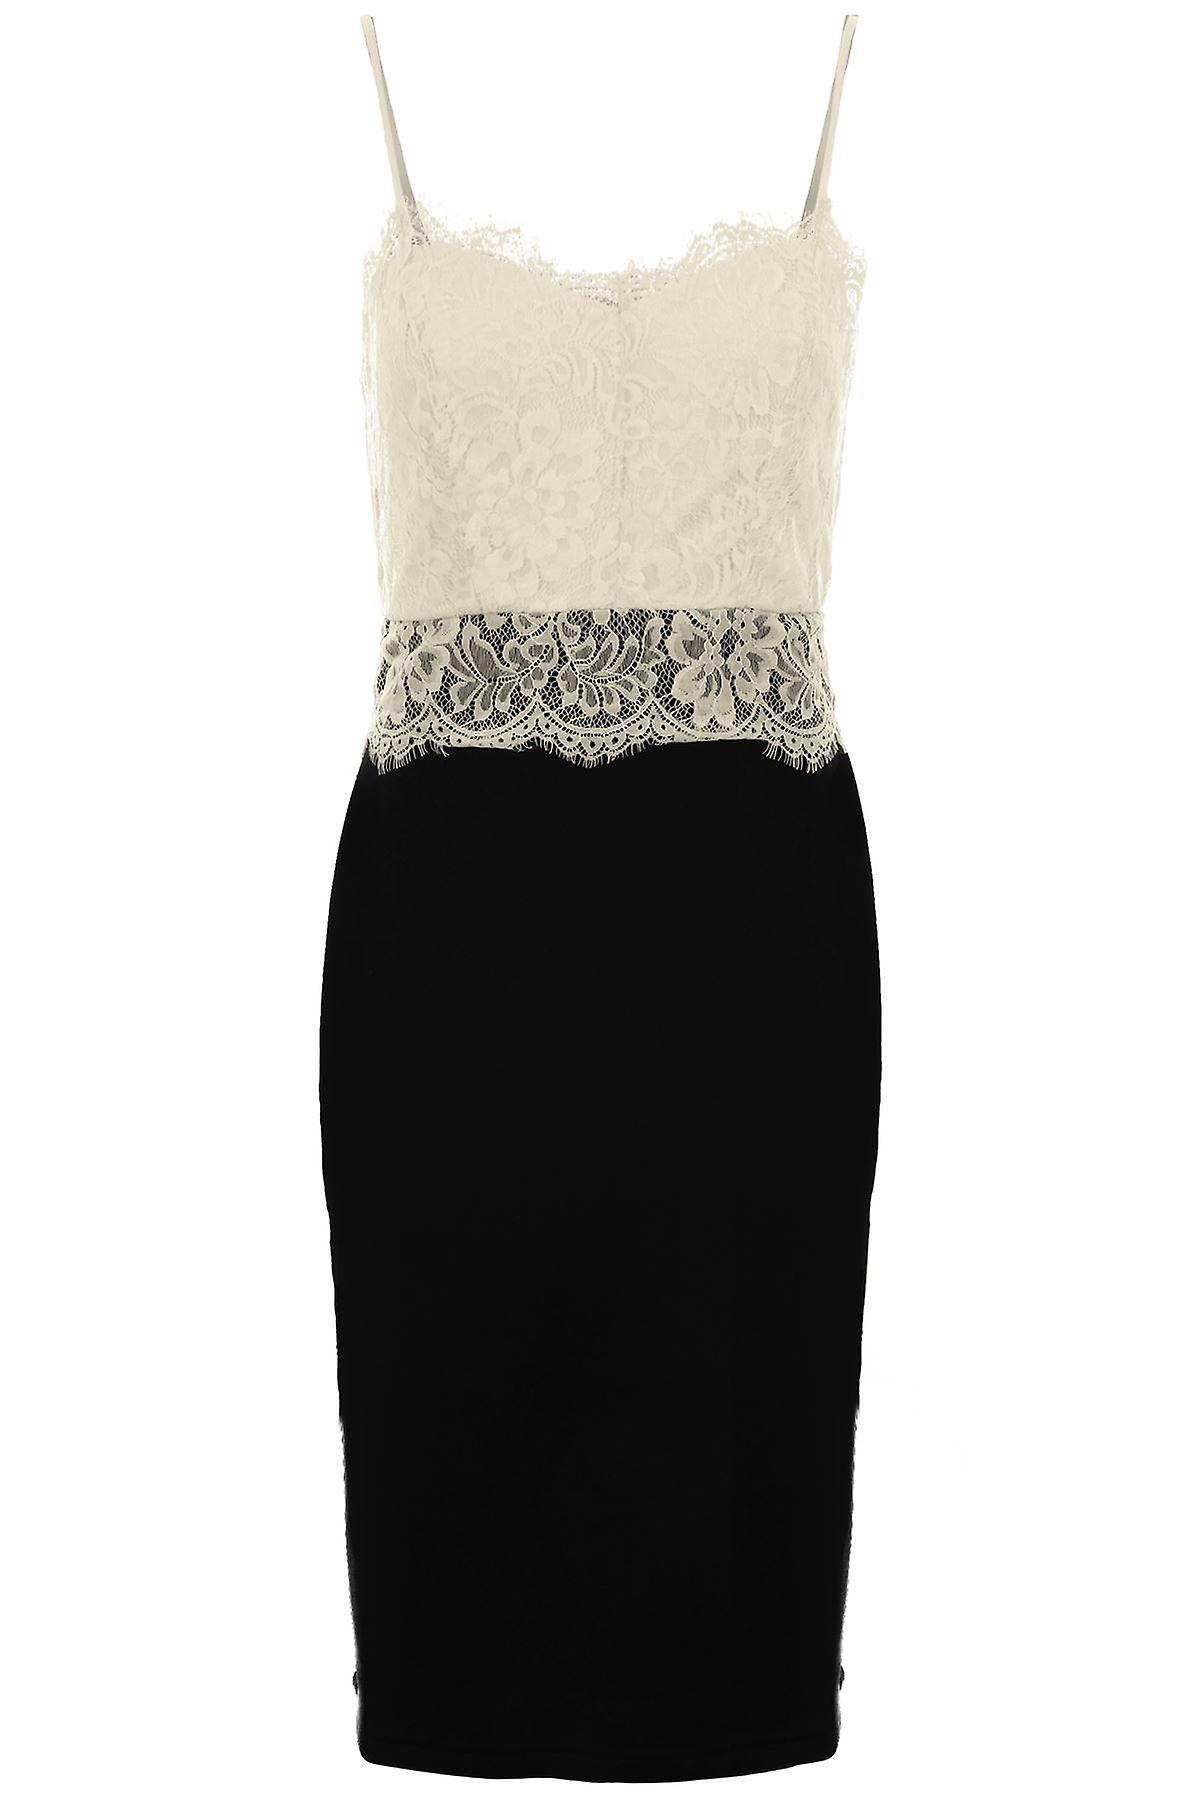 Ladies Sleeveless Floral Lace Top Contrast Pencil Women's Bodycon Party Dress